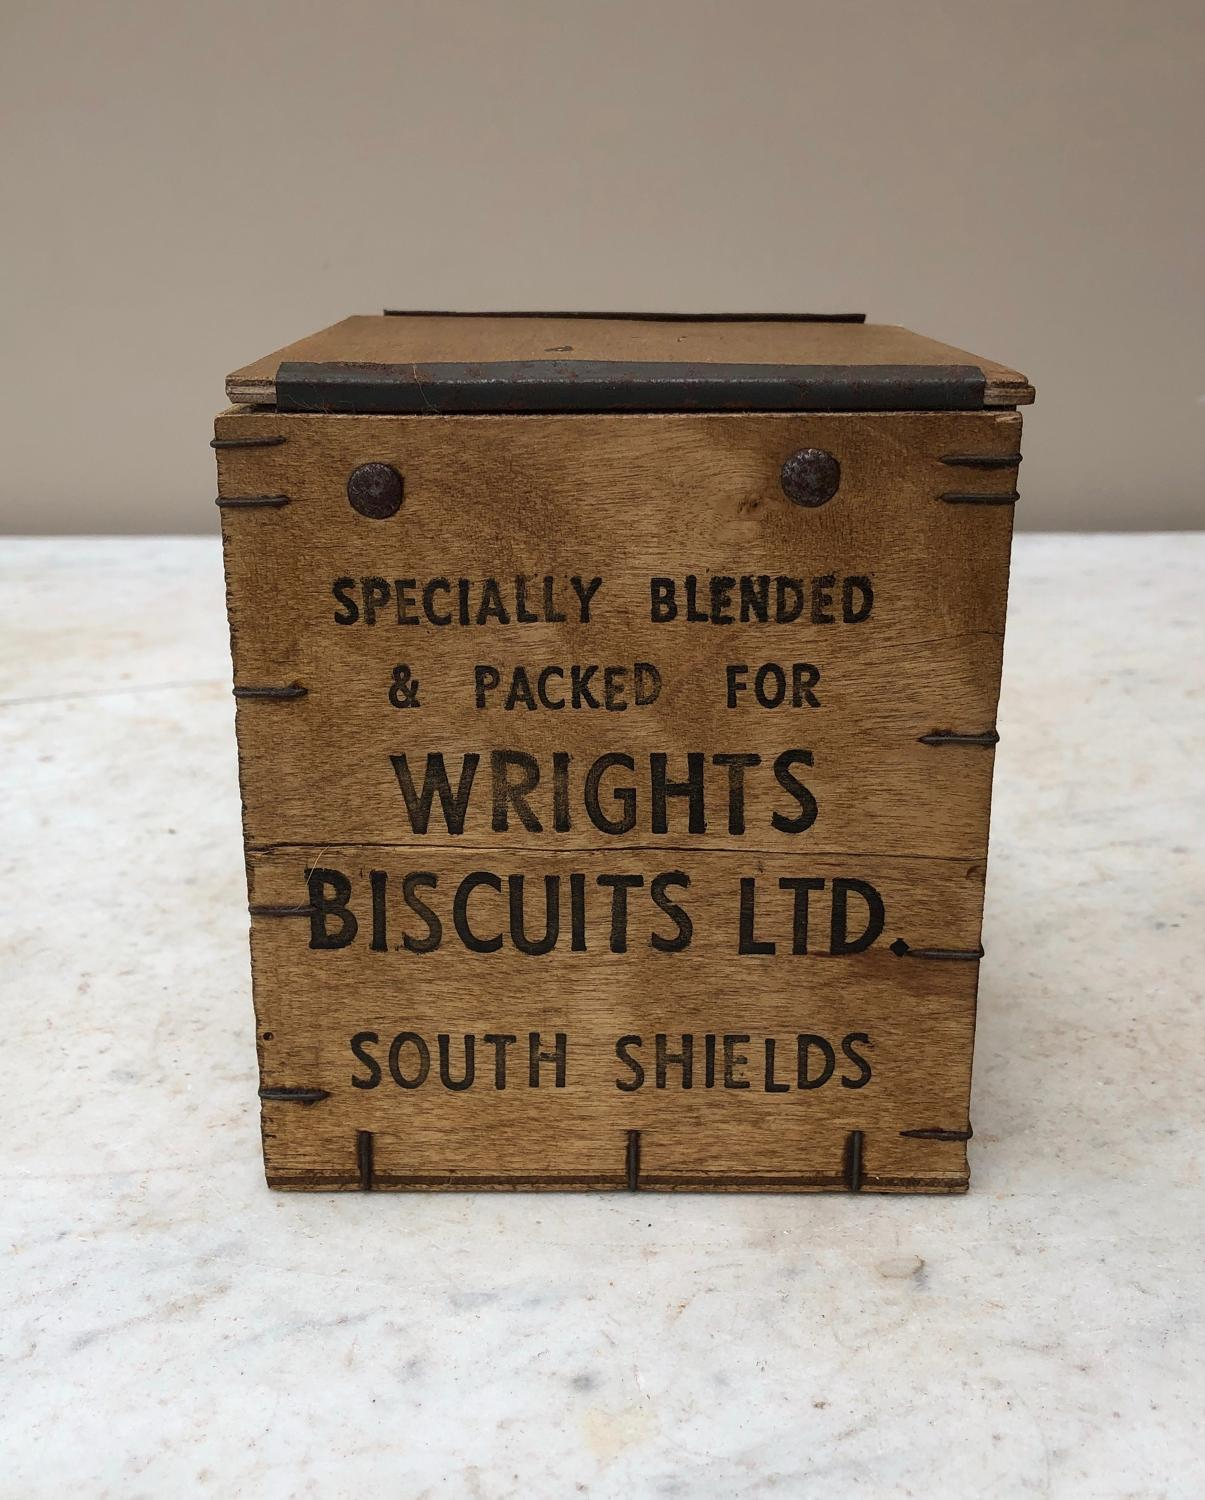 Unusual Early 20thC Wooden Advertising Tea Box - Wrights Biscuits Ltd